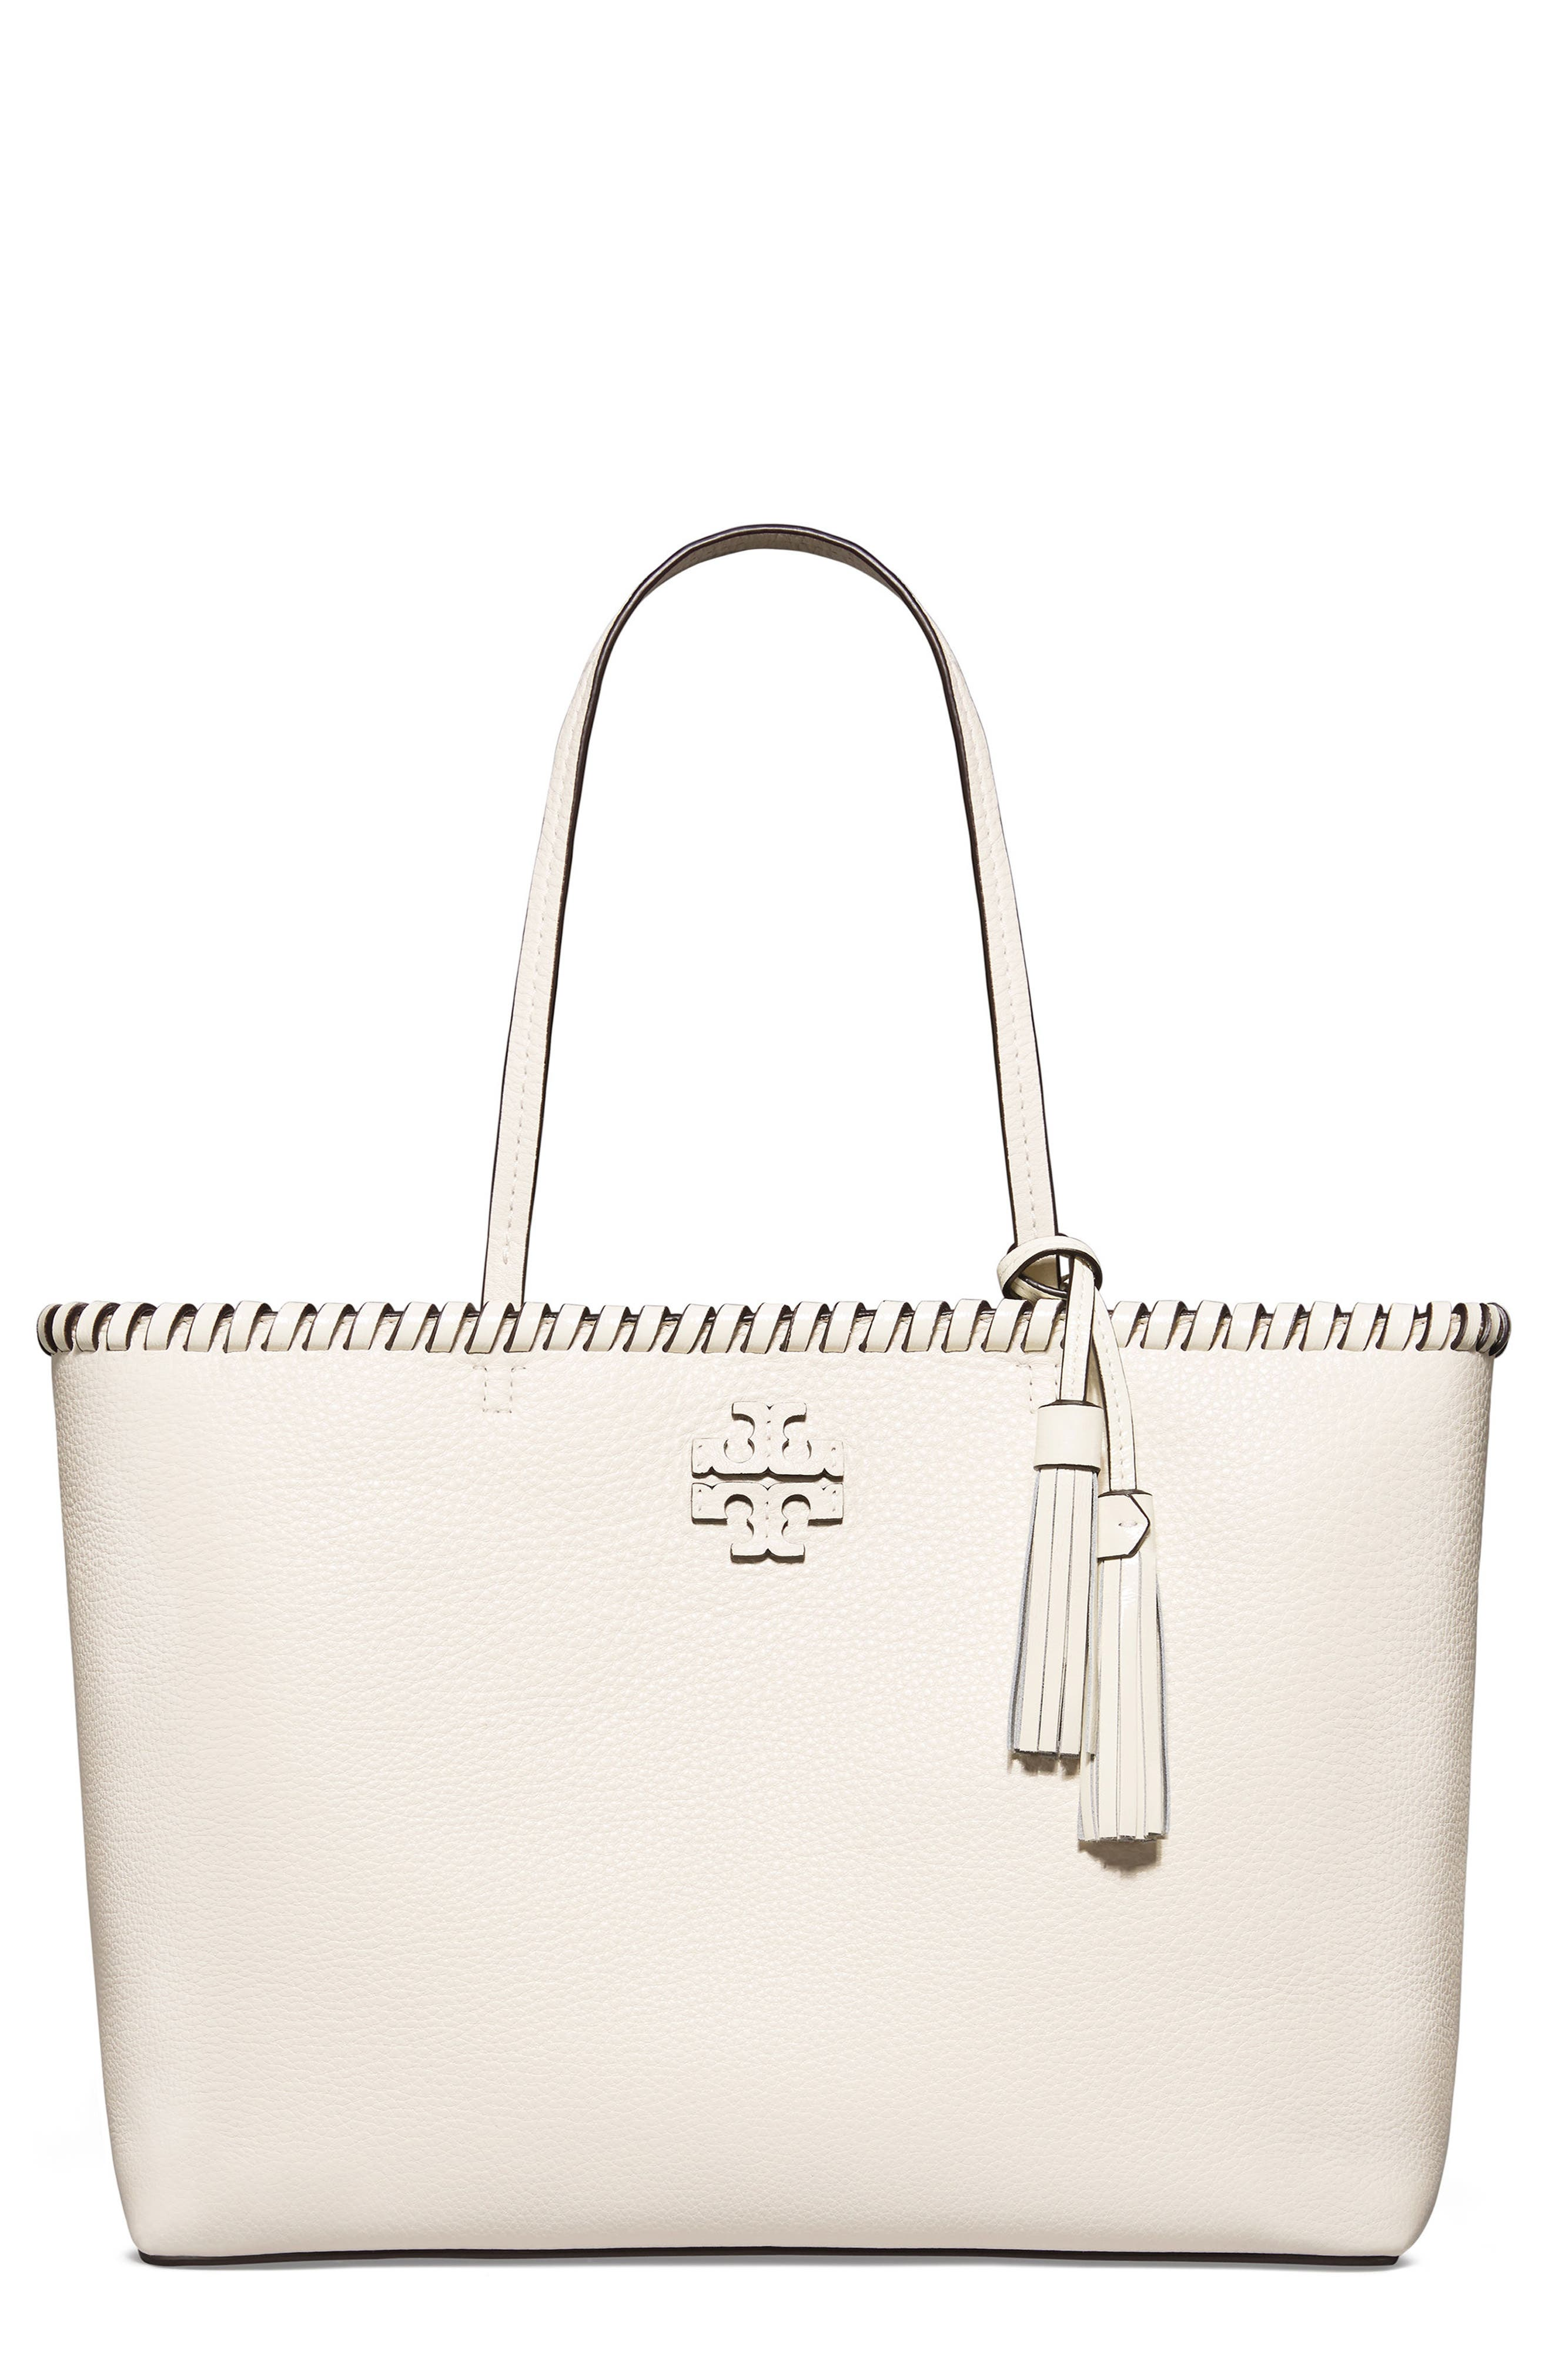 McGraw Whipstitch Leather Tote,                         Main,                         color, New Ivory